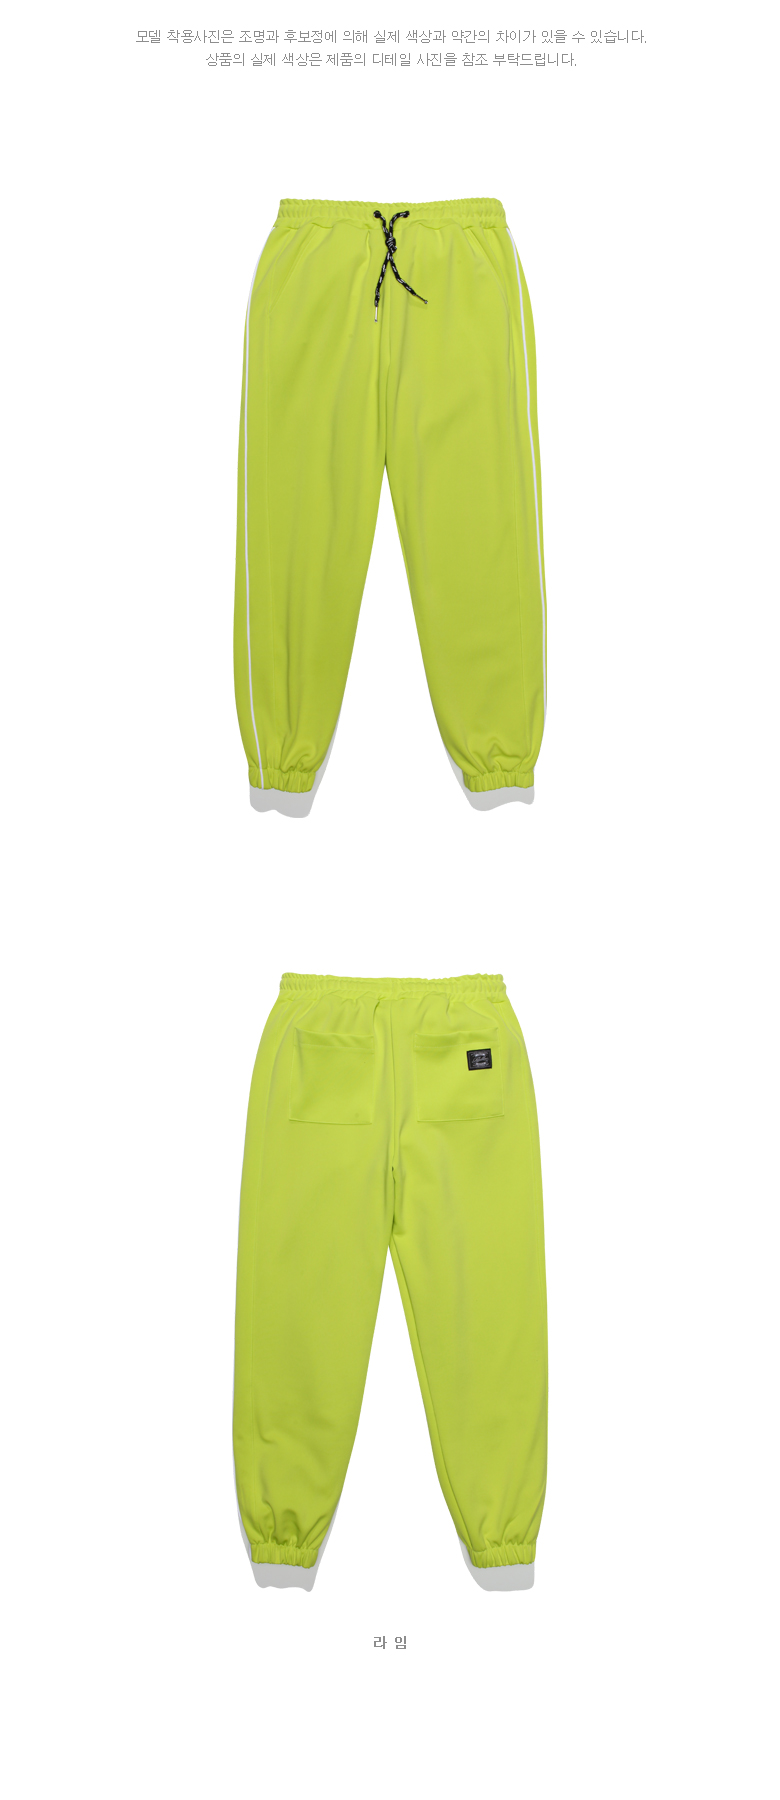 20190422_pl_walkingjogger_detail_lime_kang_01.jpg